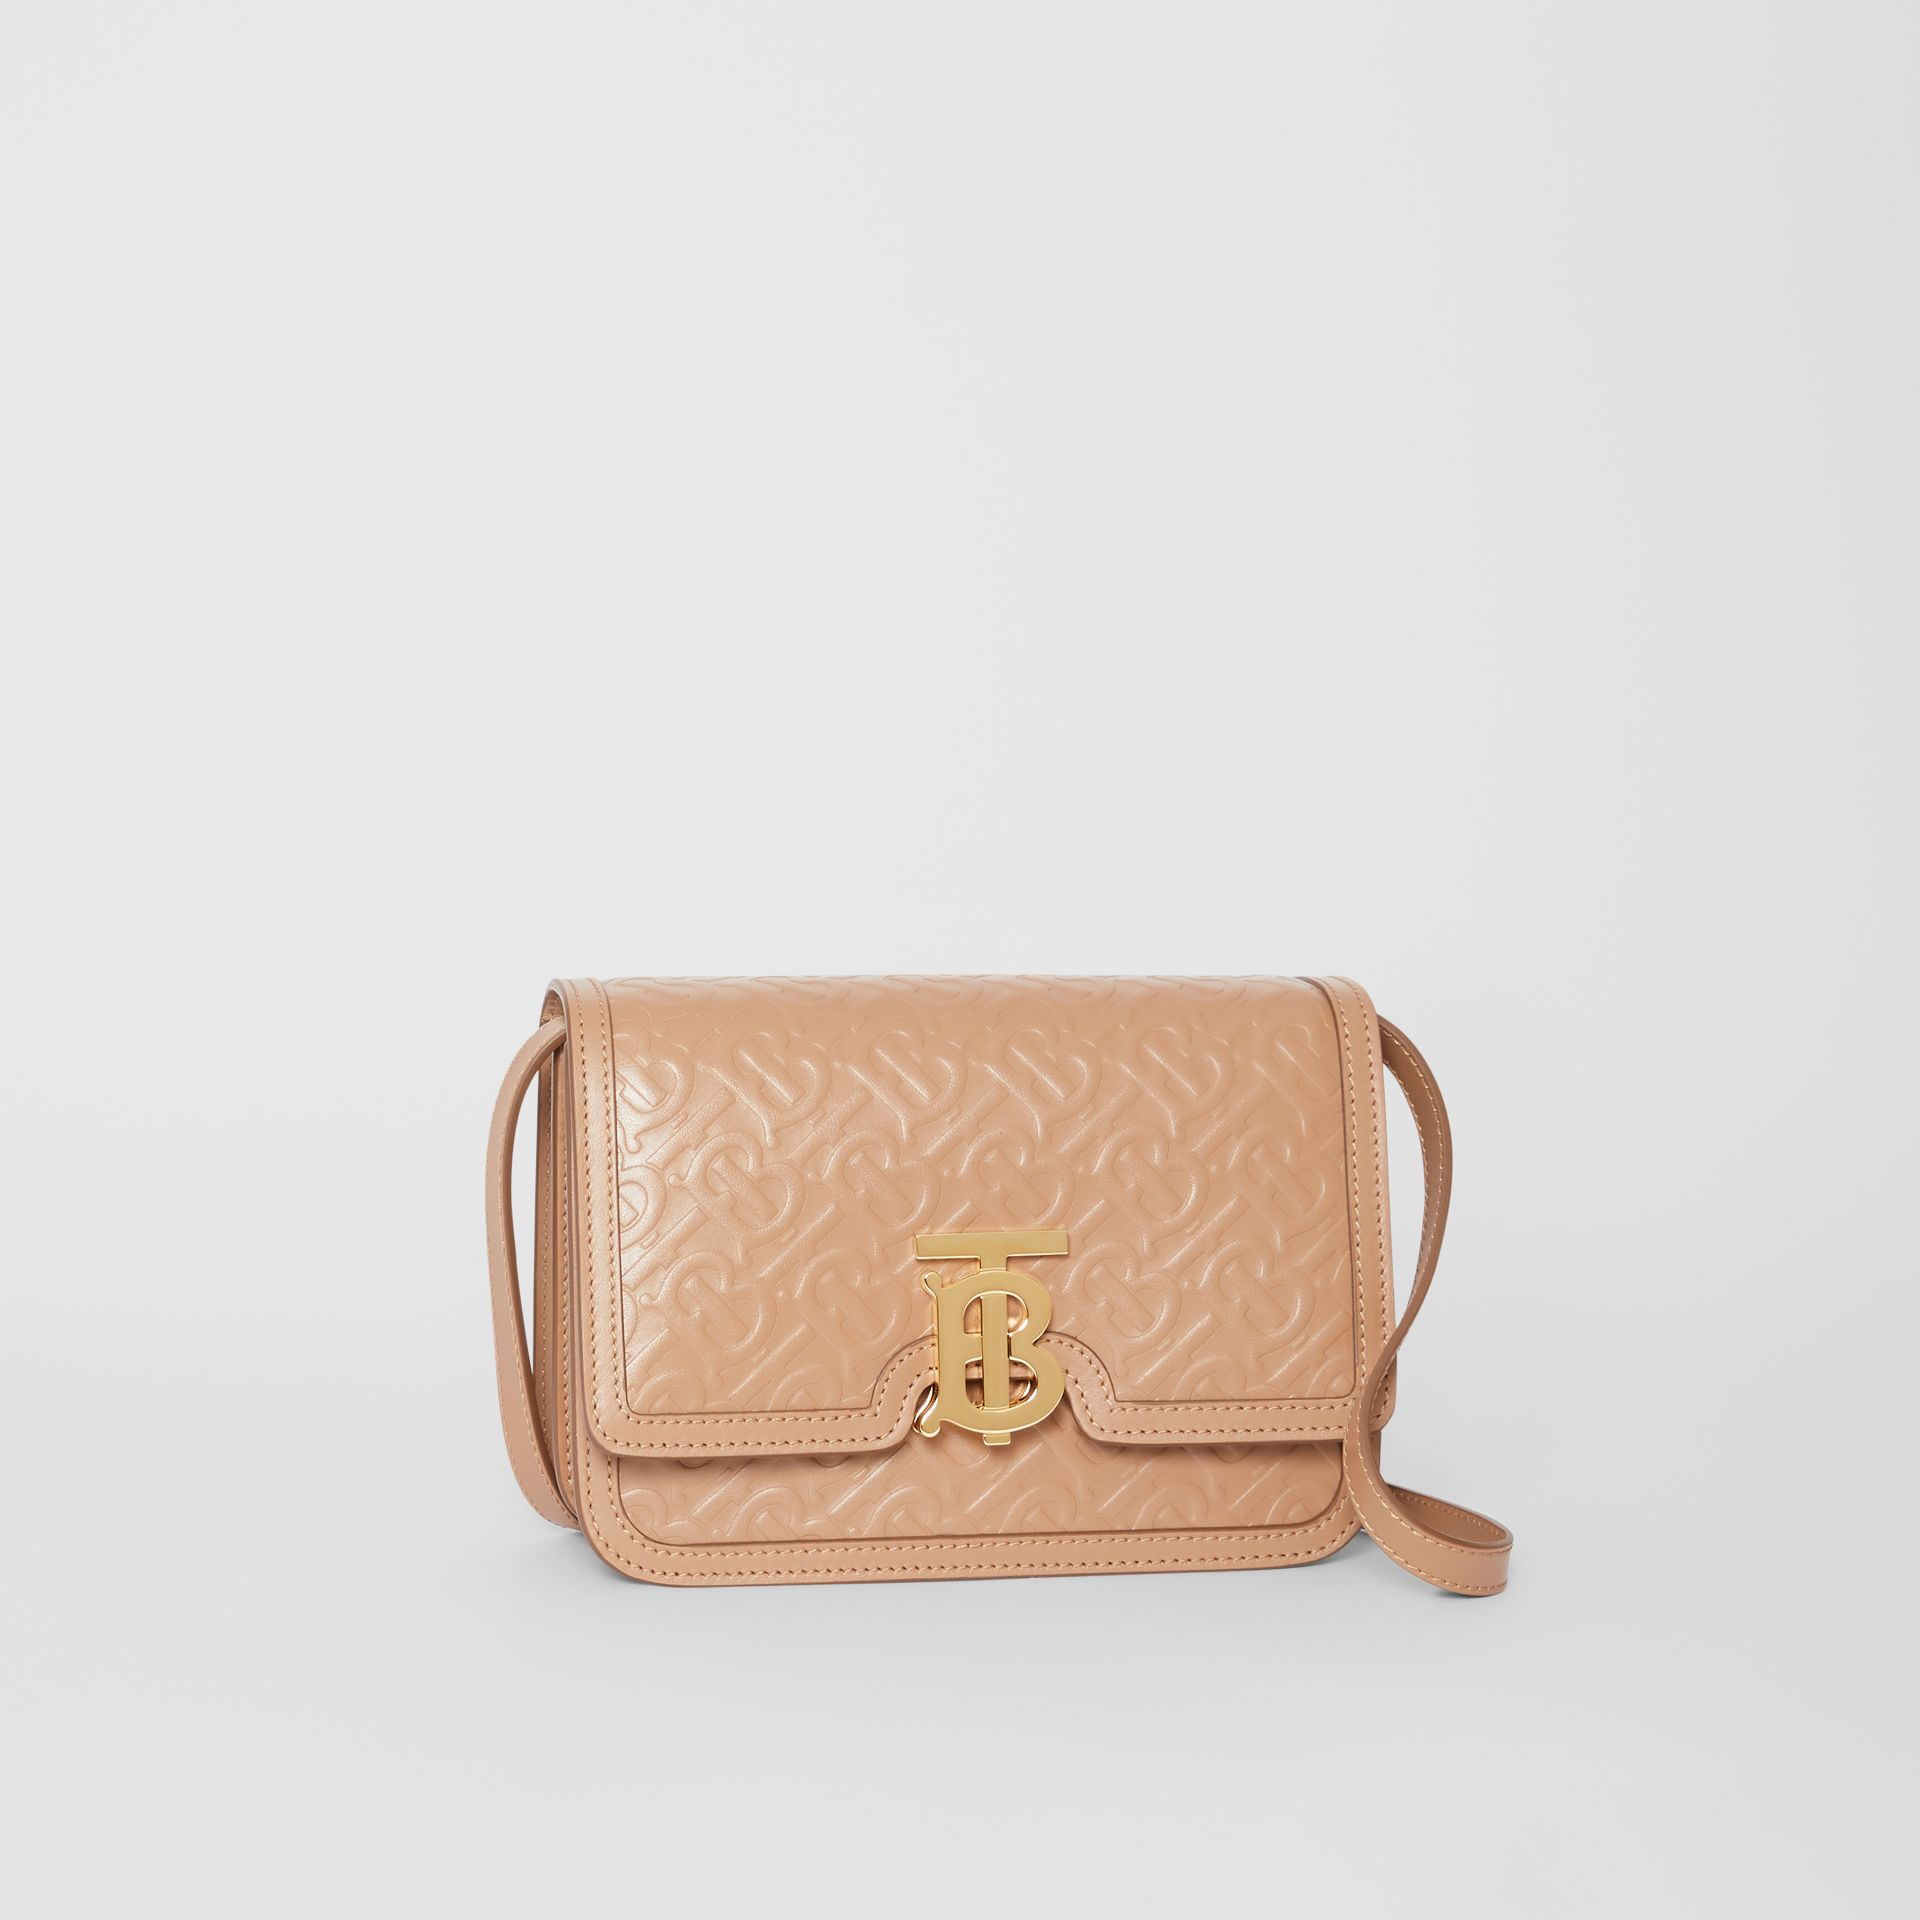 Small Monogram Leather TB Bag in Light Camel - Women | Burberry - gallery image 6